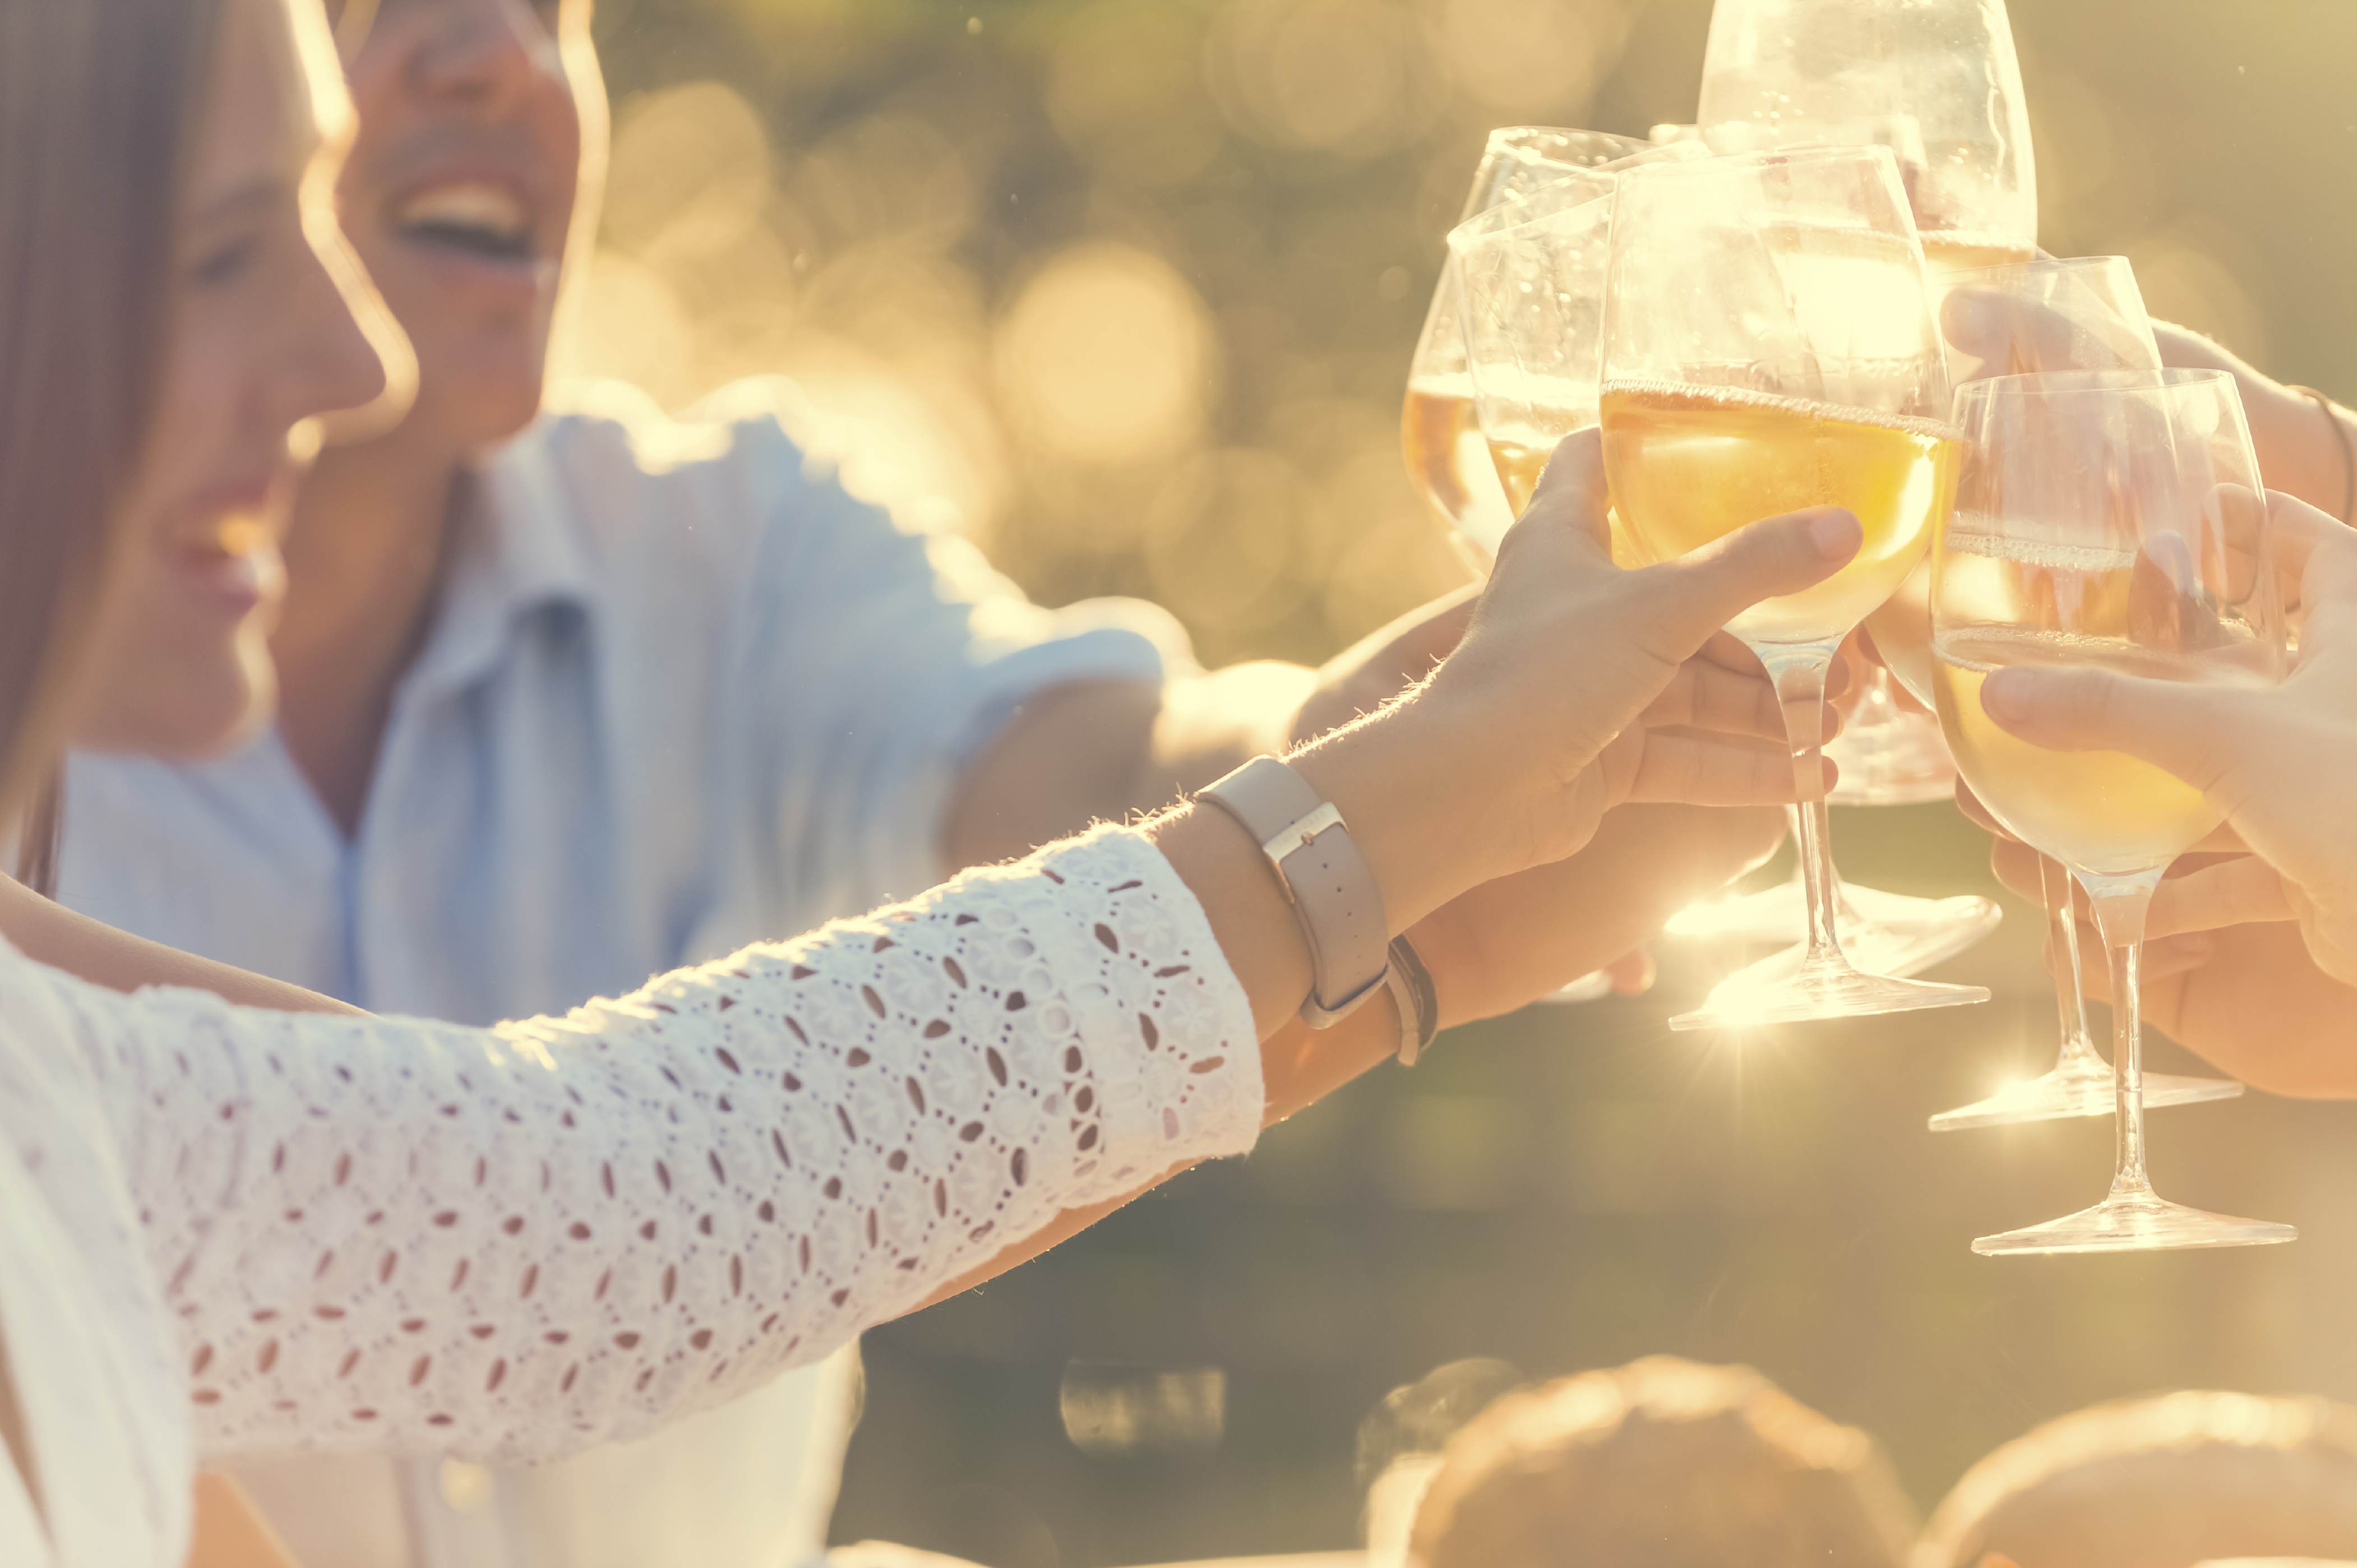 Group of friends having drinks at sunset. They are celebrating with a wine toast. They are smiling and happy. Lens flare